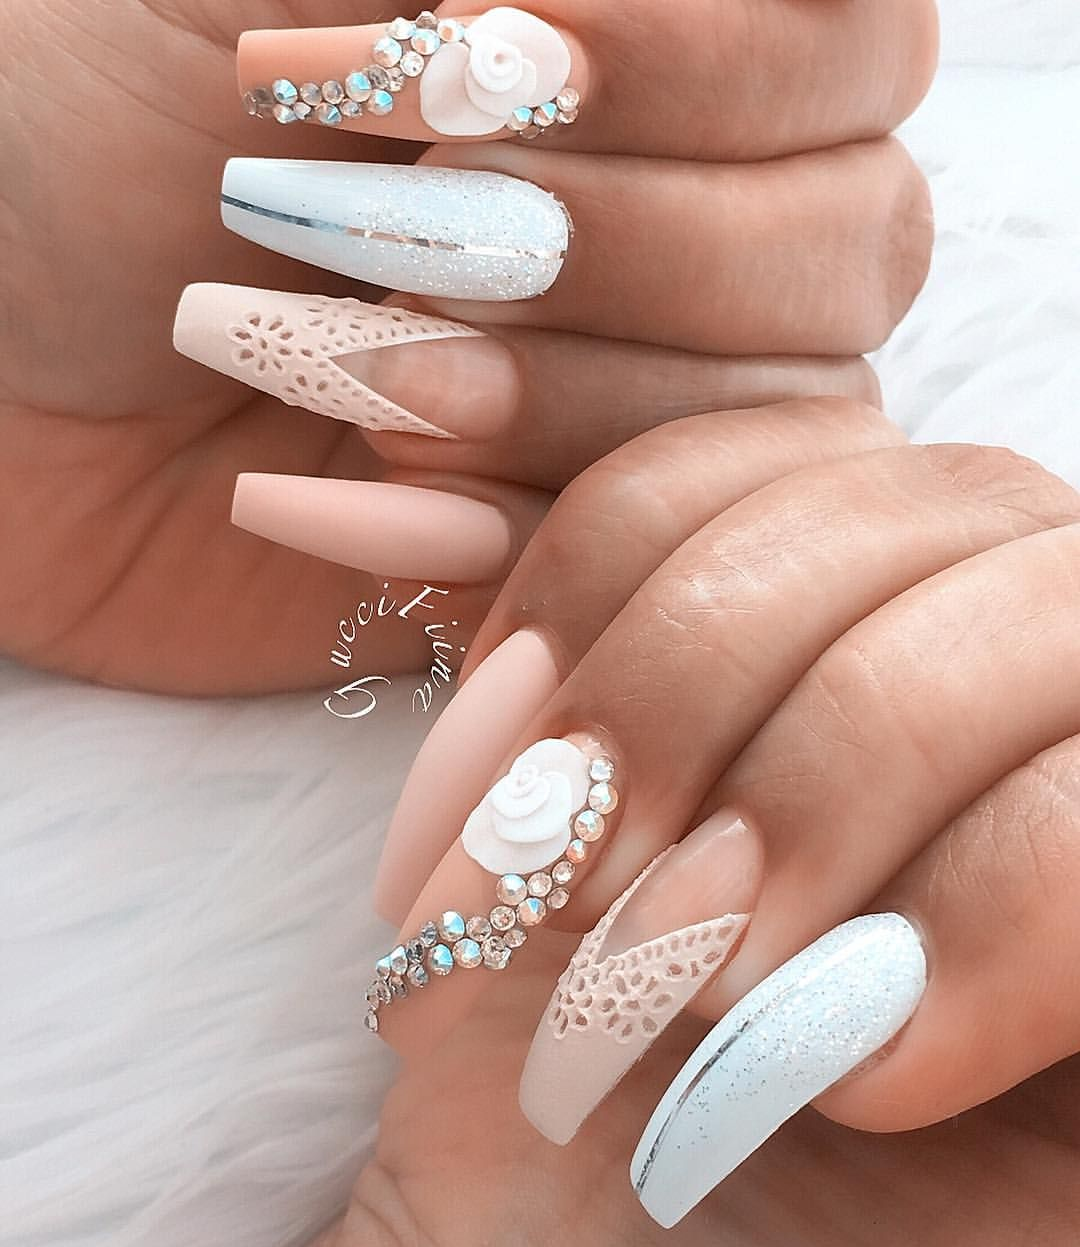 3D Acrylic Flowers, Swarovski Crystals Pink And White Nail